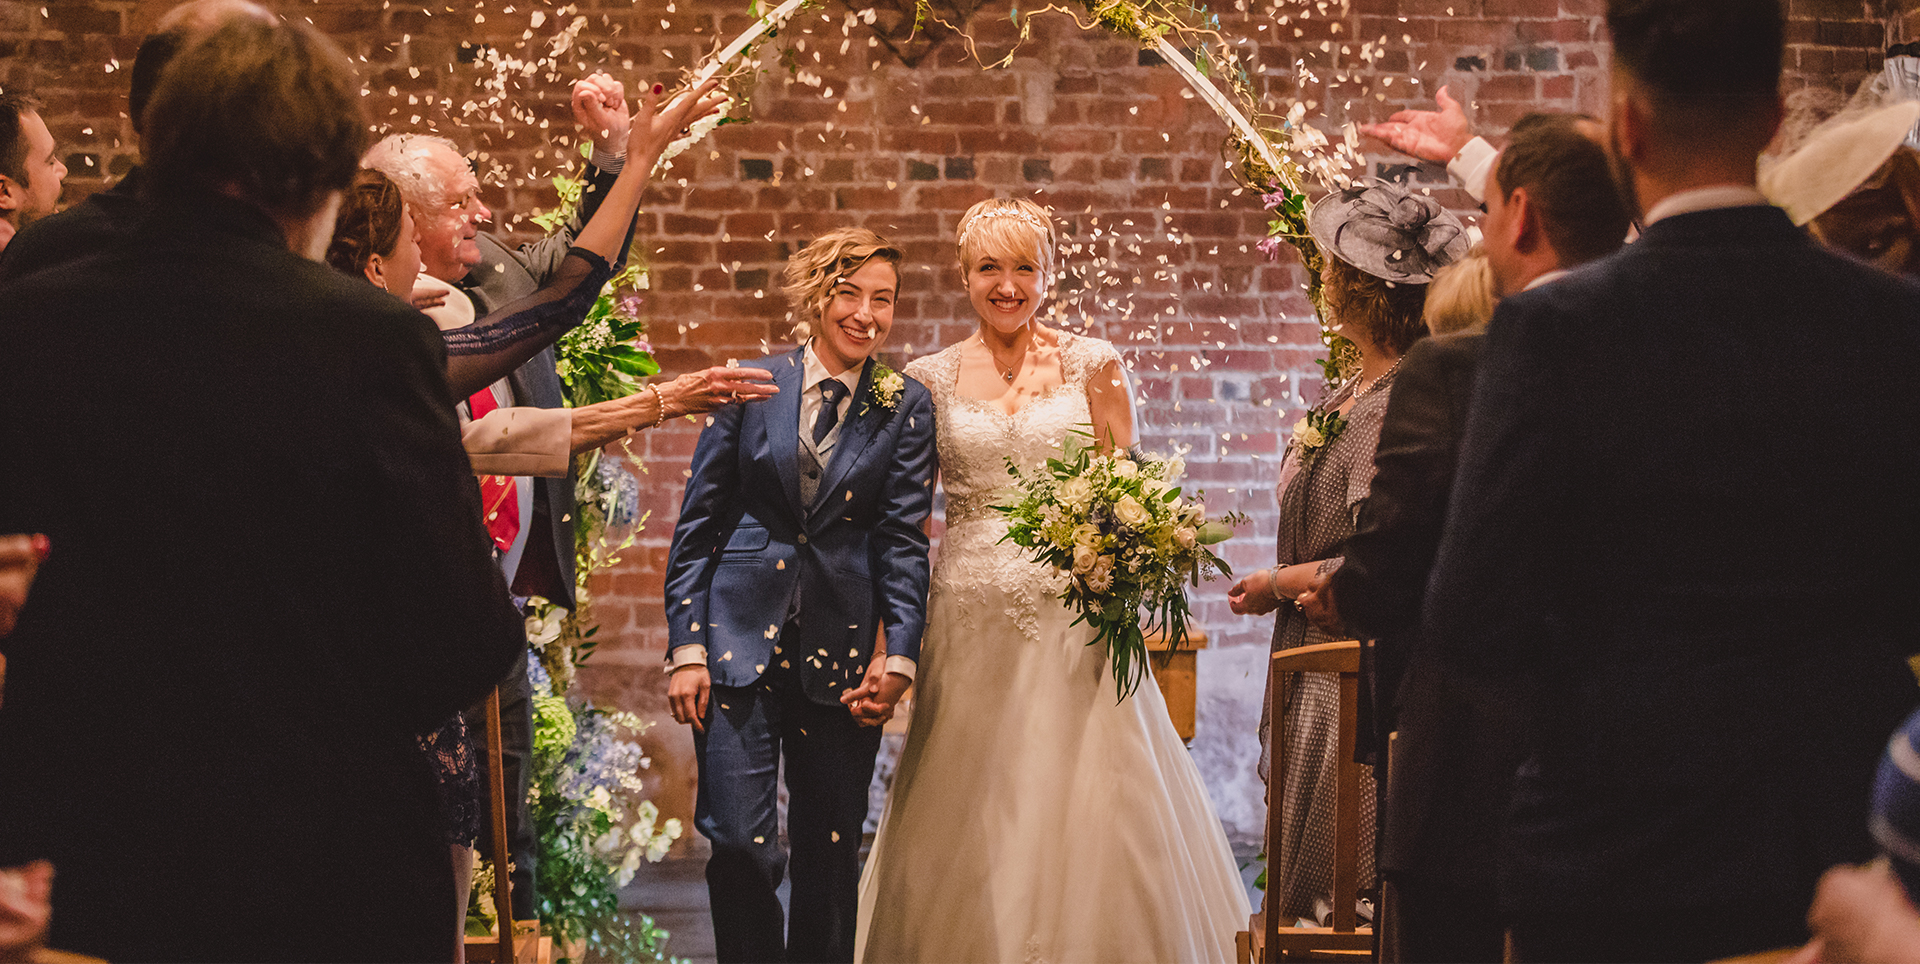 The wedding party celebrate the newlyweds with confetti at this beautiful Worcestershire wedding venue